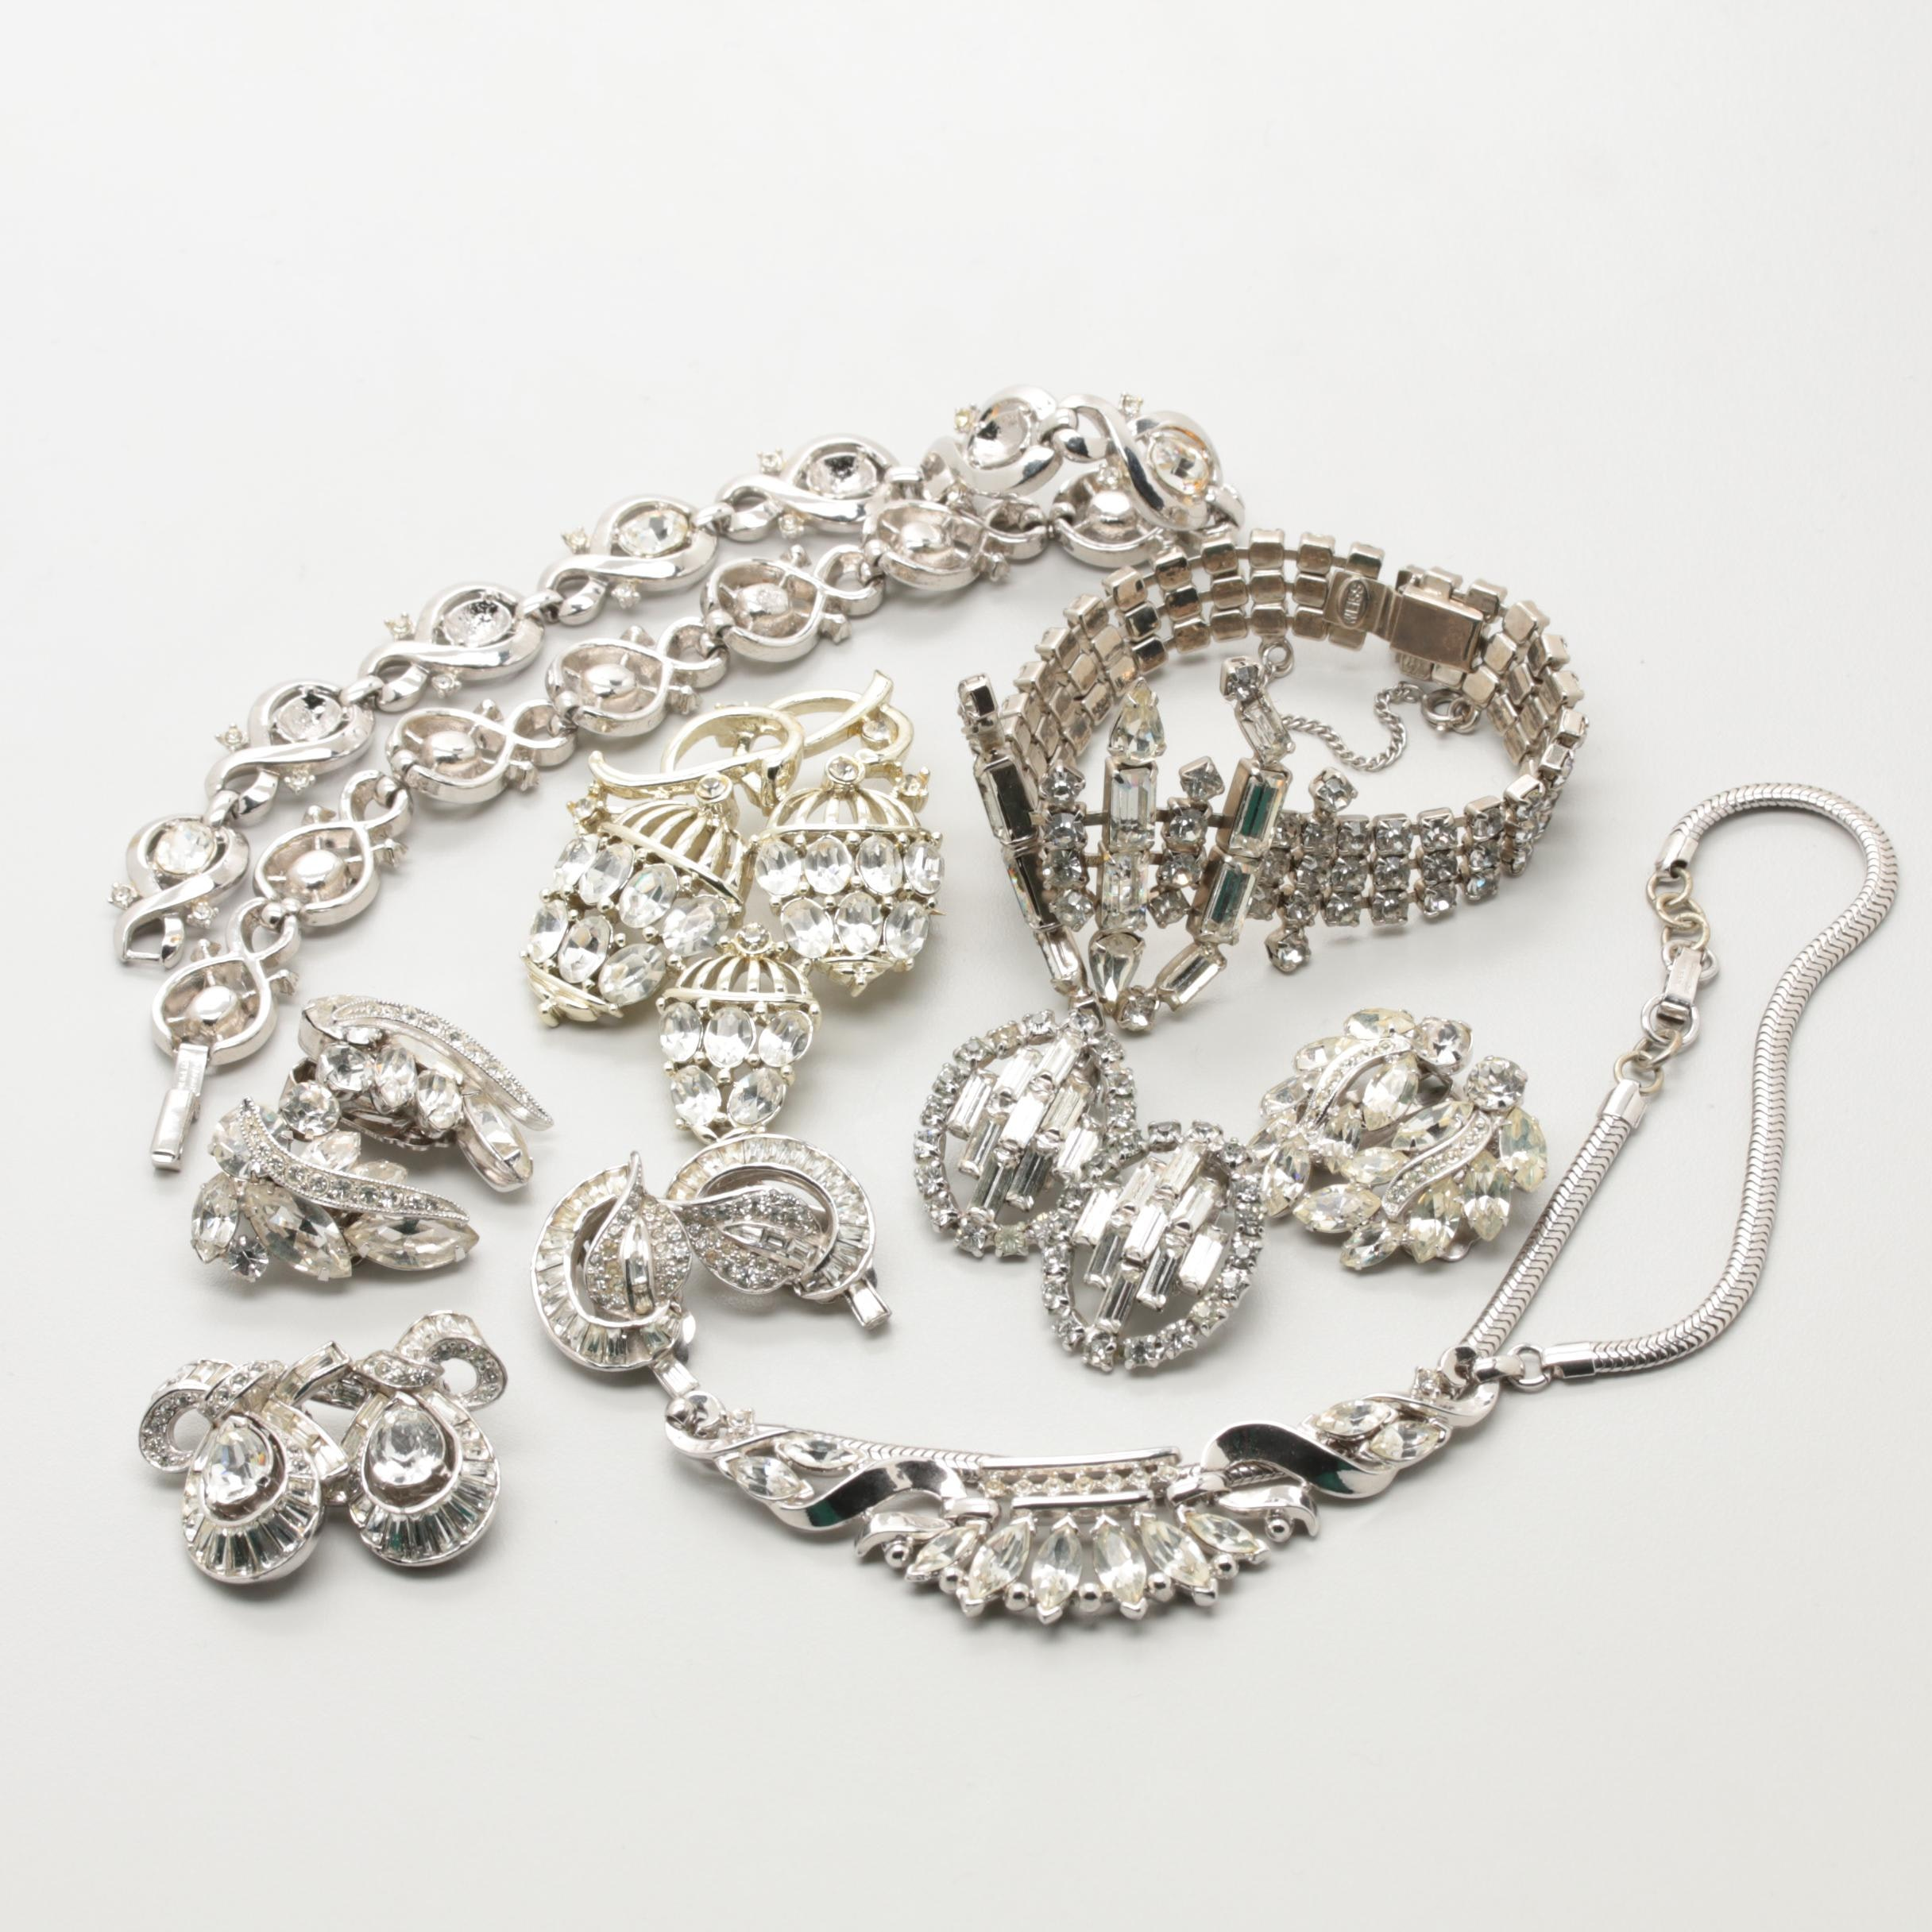 Collection of 1960s Rhinestone Jewelry Including Weiss, Trifari